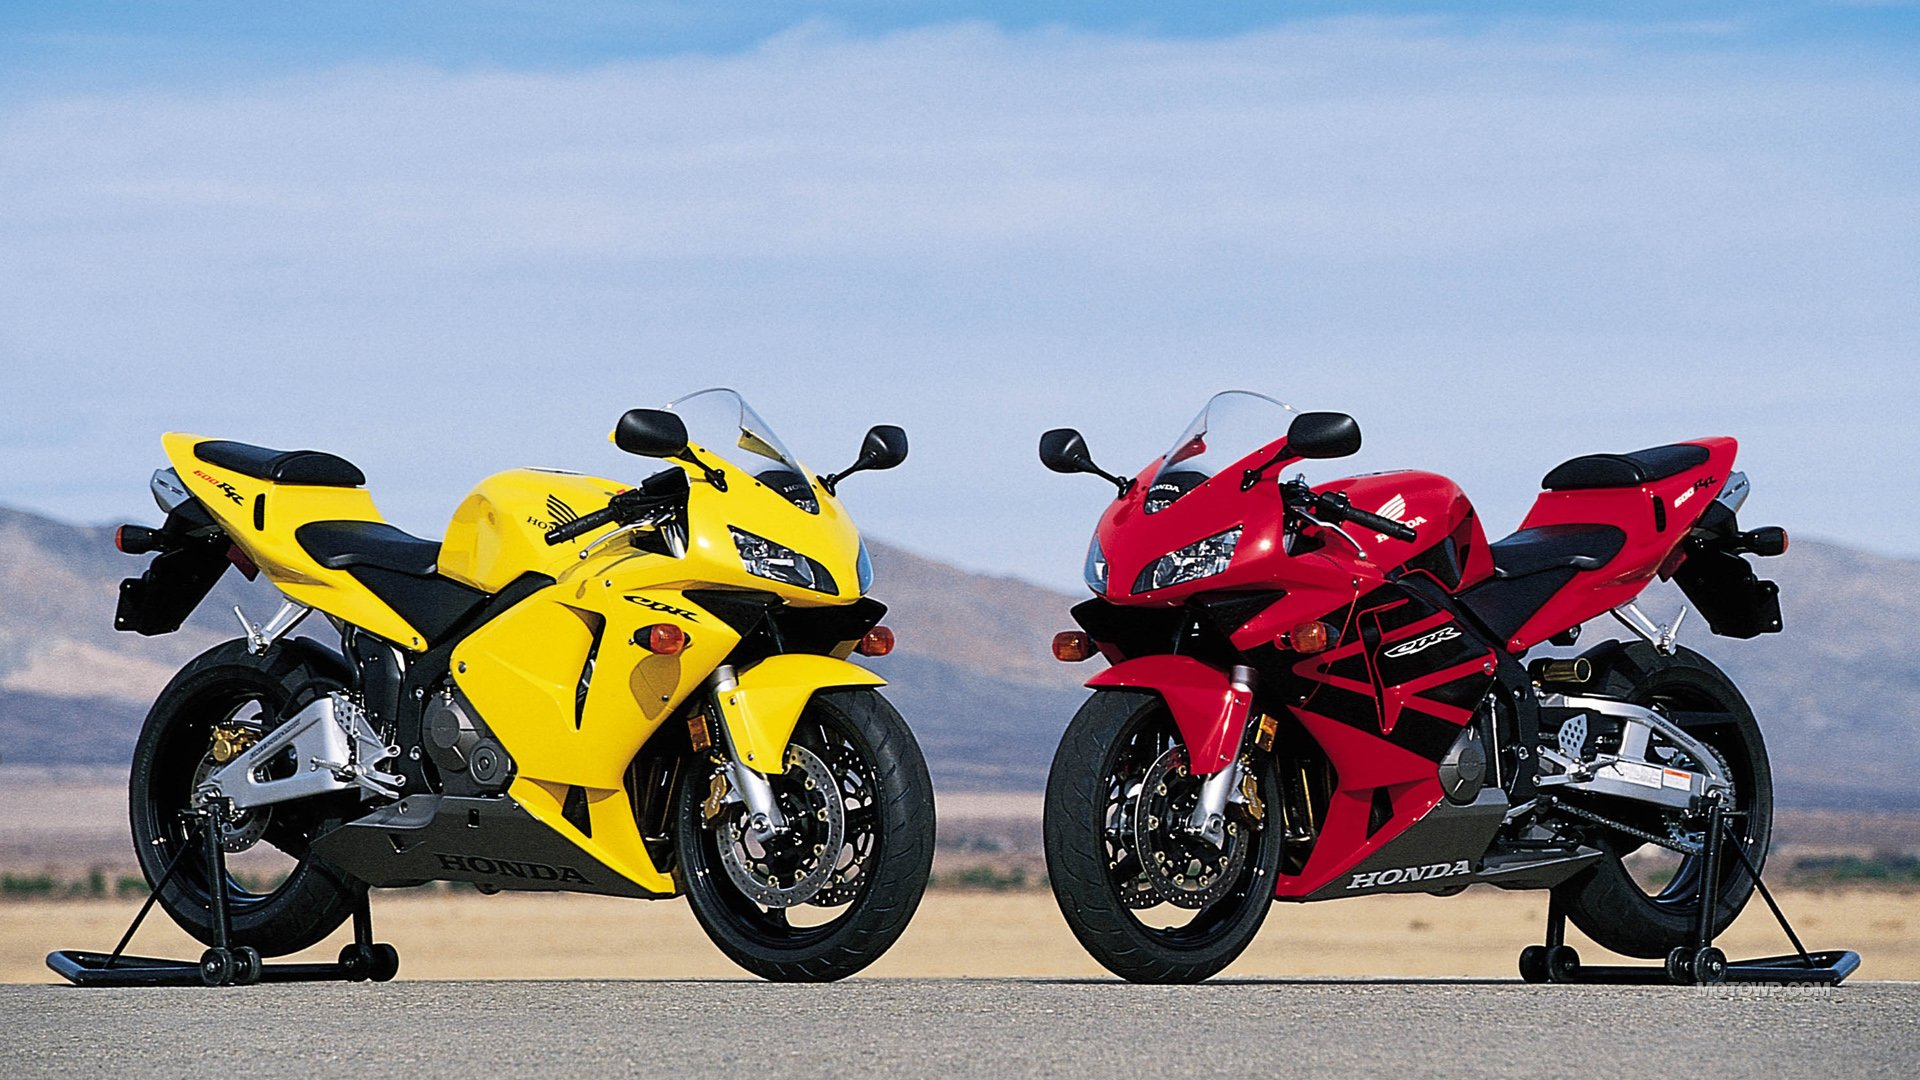 150 Honda CBR600RR HD Wallpapers Background Images 1920x1080